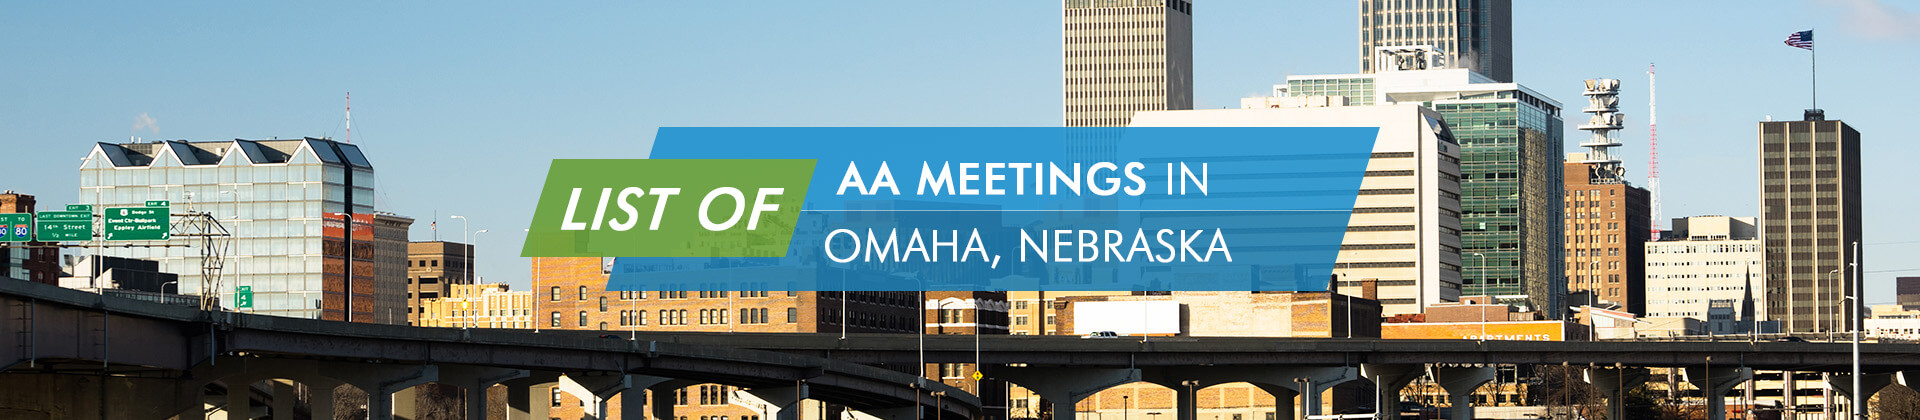 AA Meetings Omaha Nebraska